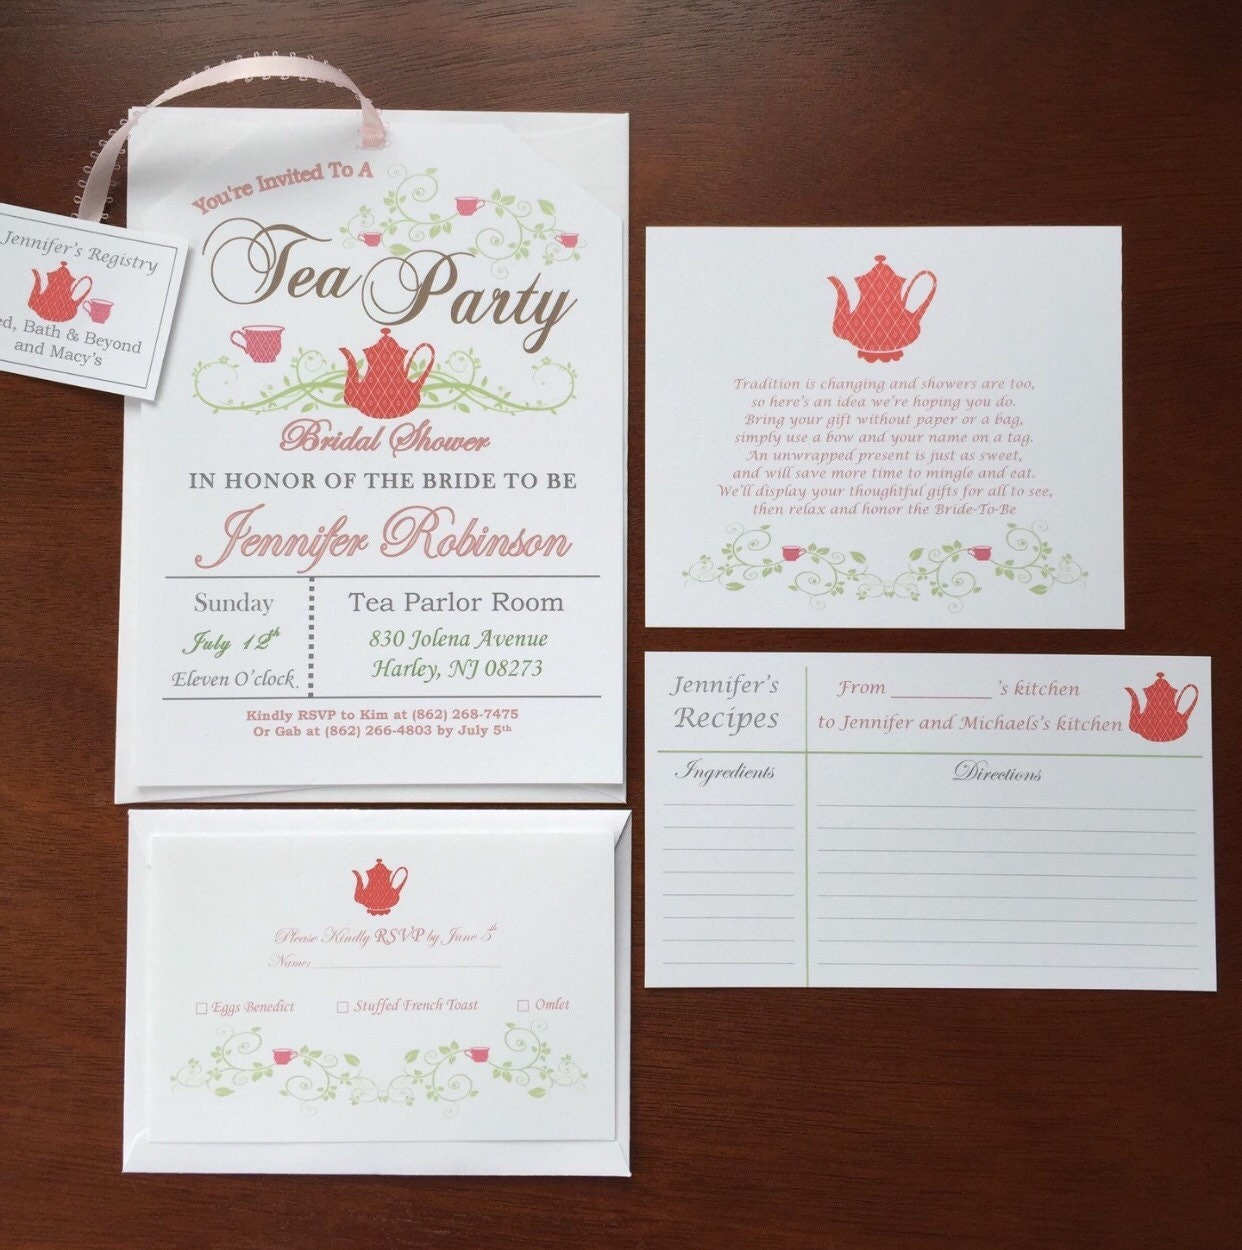 Printable Poem Cards For Tea Party Invitations